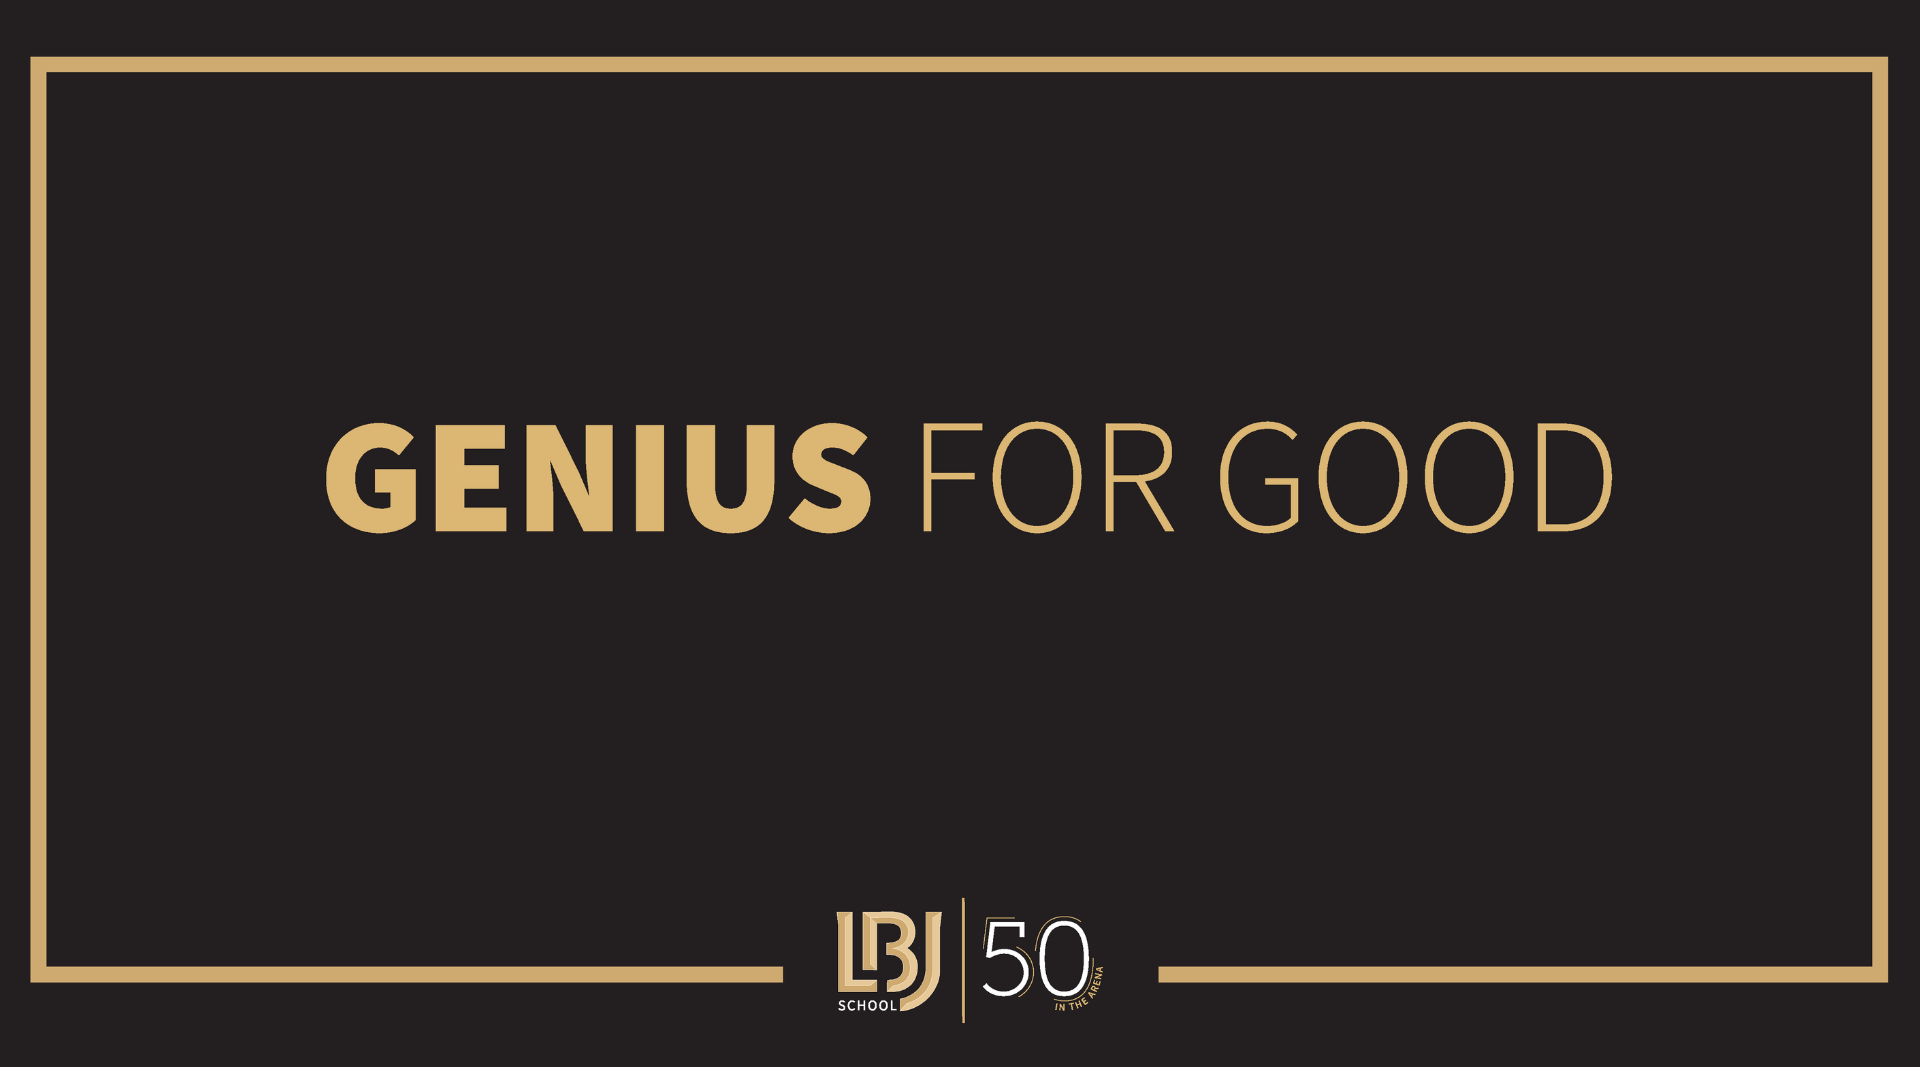 LBJ 50th Anniversary: Genius for Good